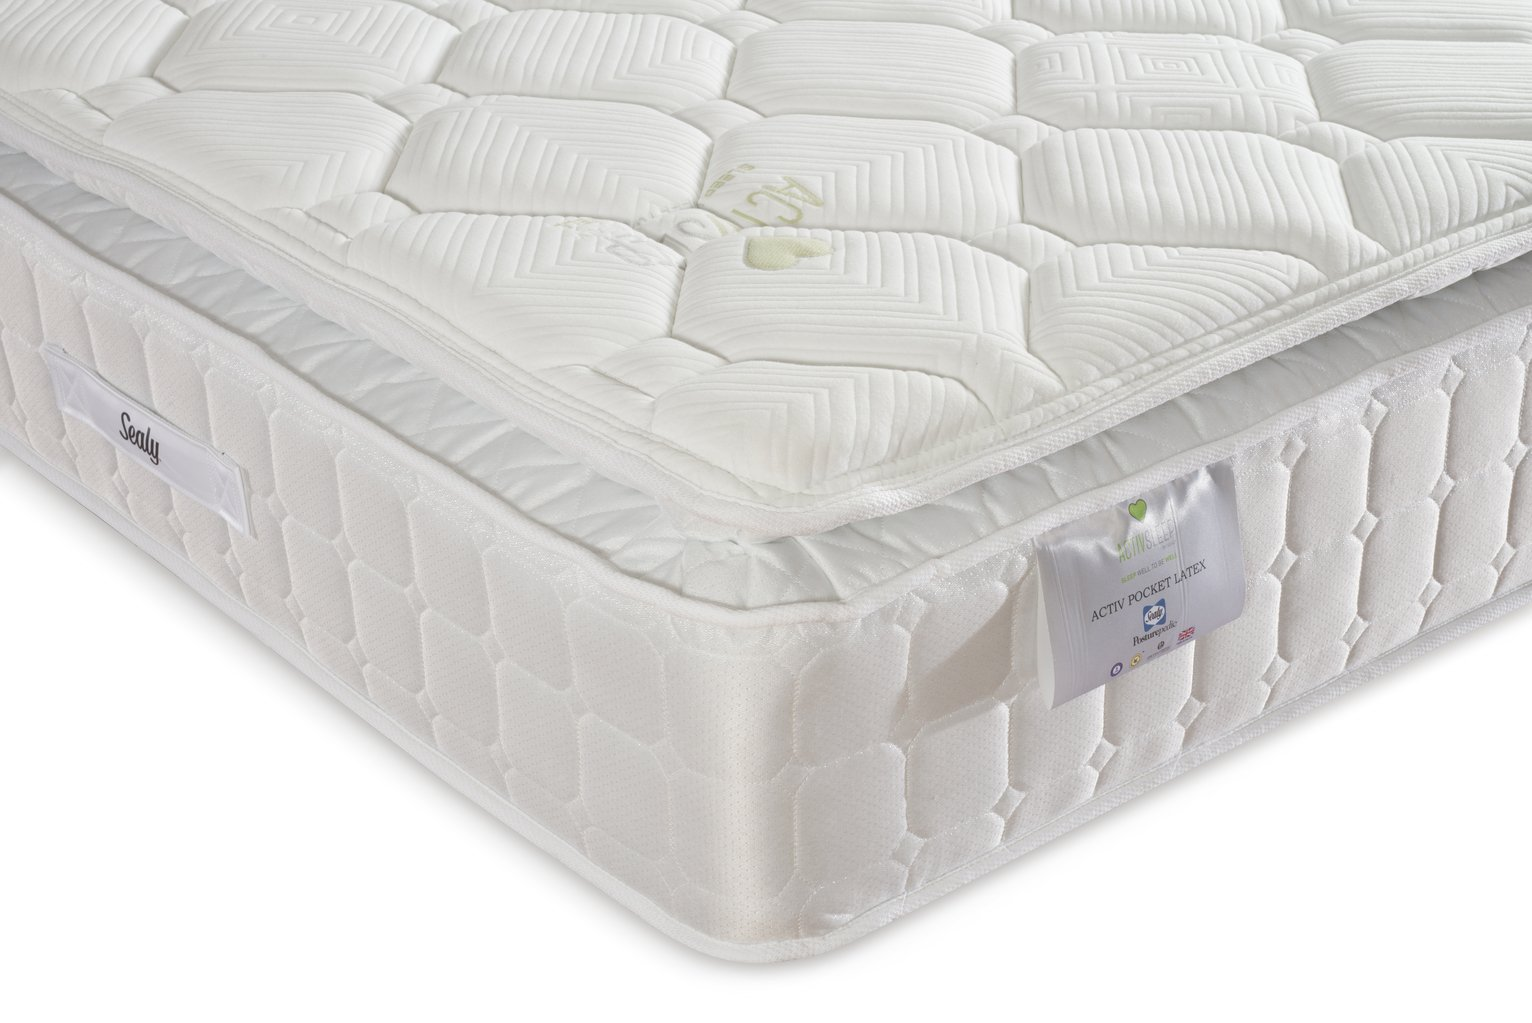 Sealy Posturepedic 1400 Latex Single Mattress at Argos from Sealy